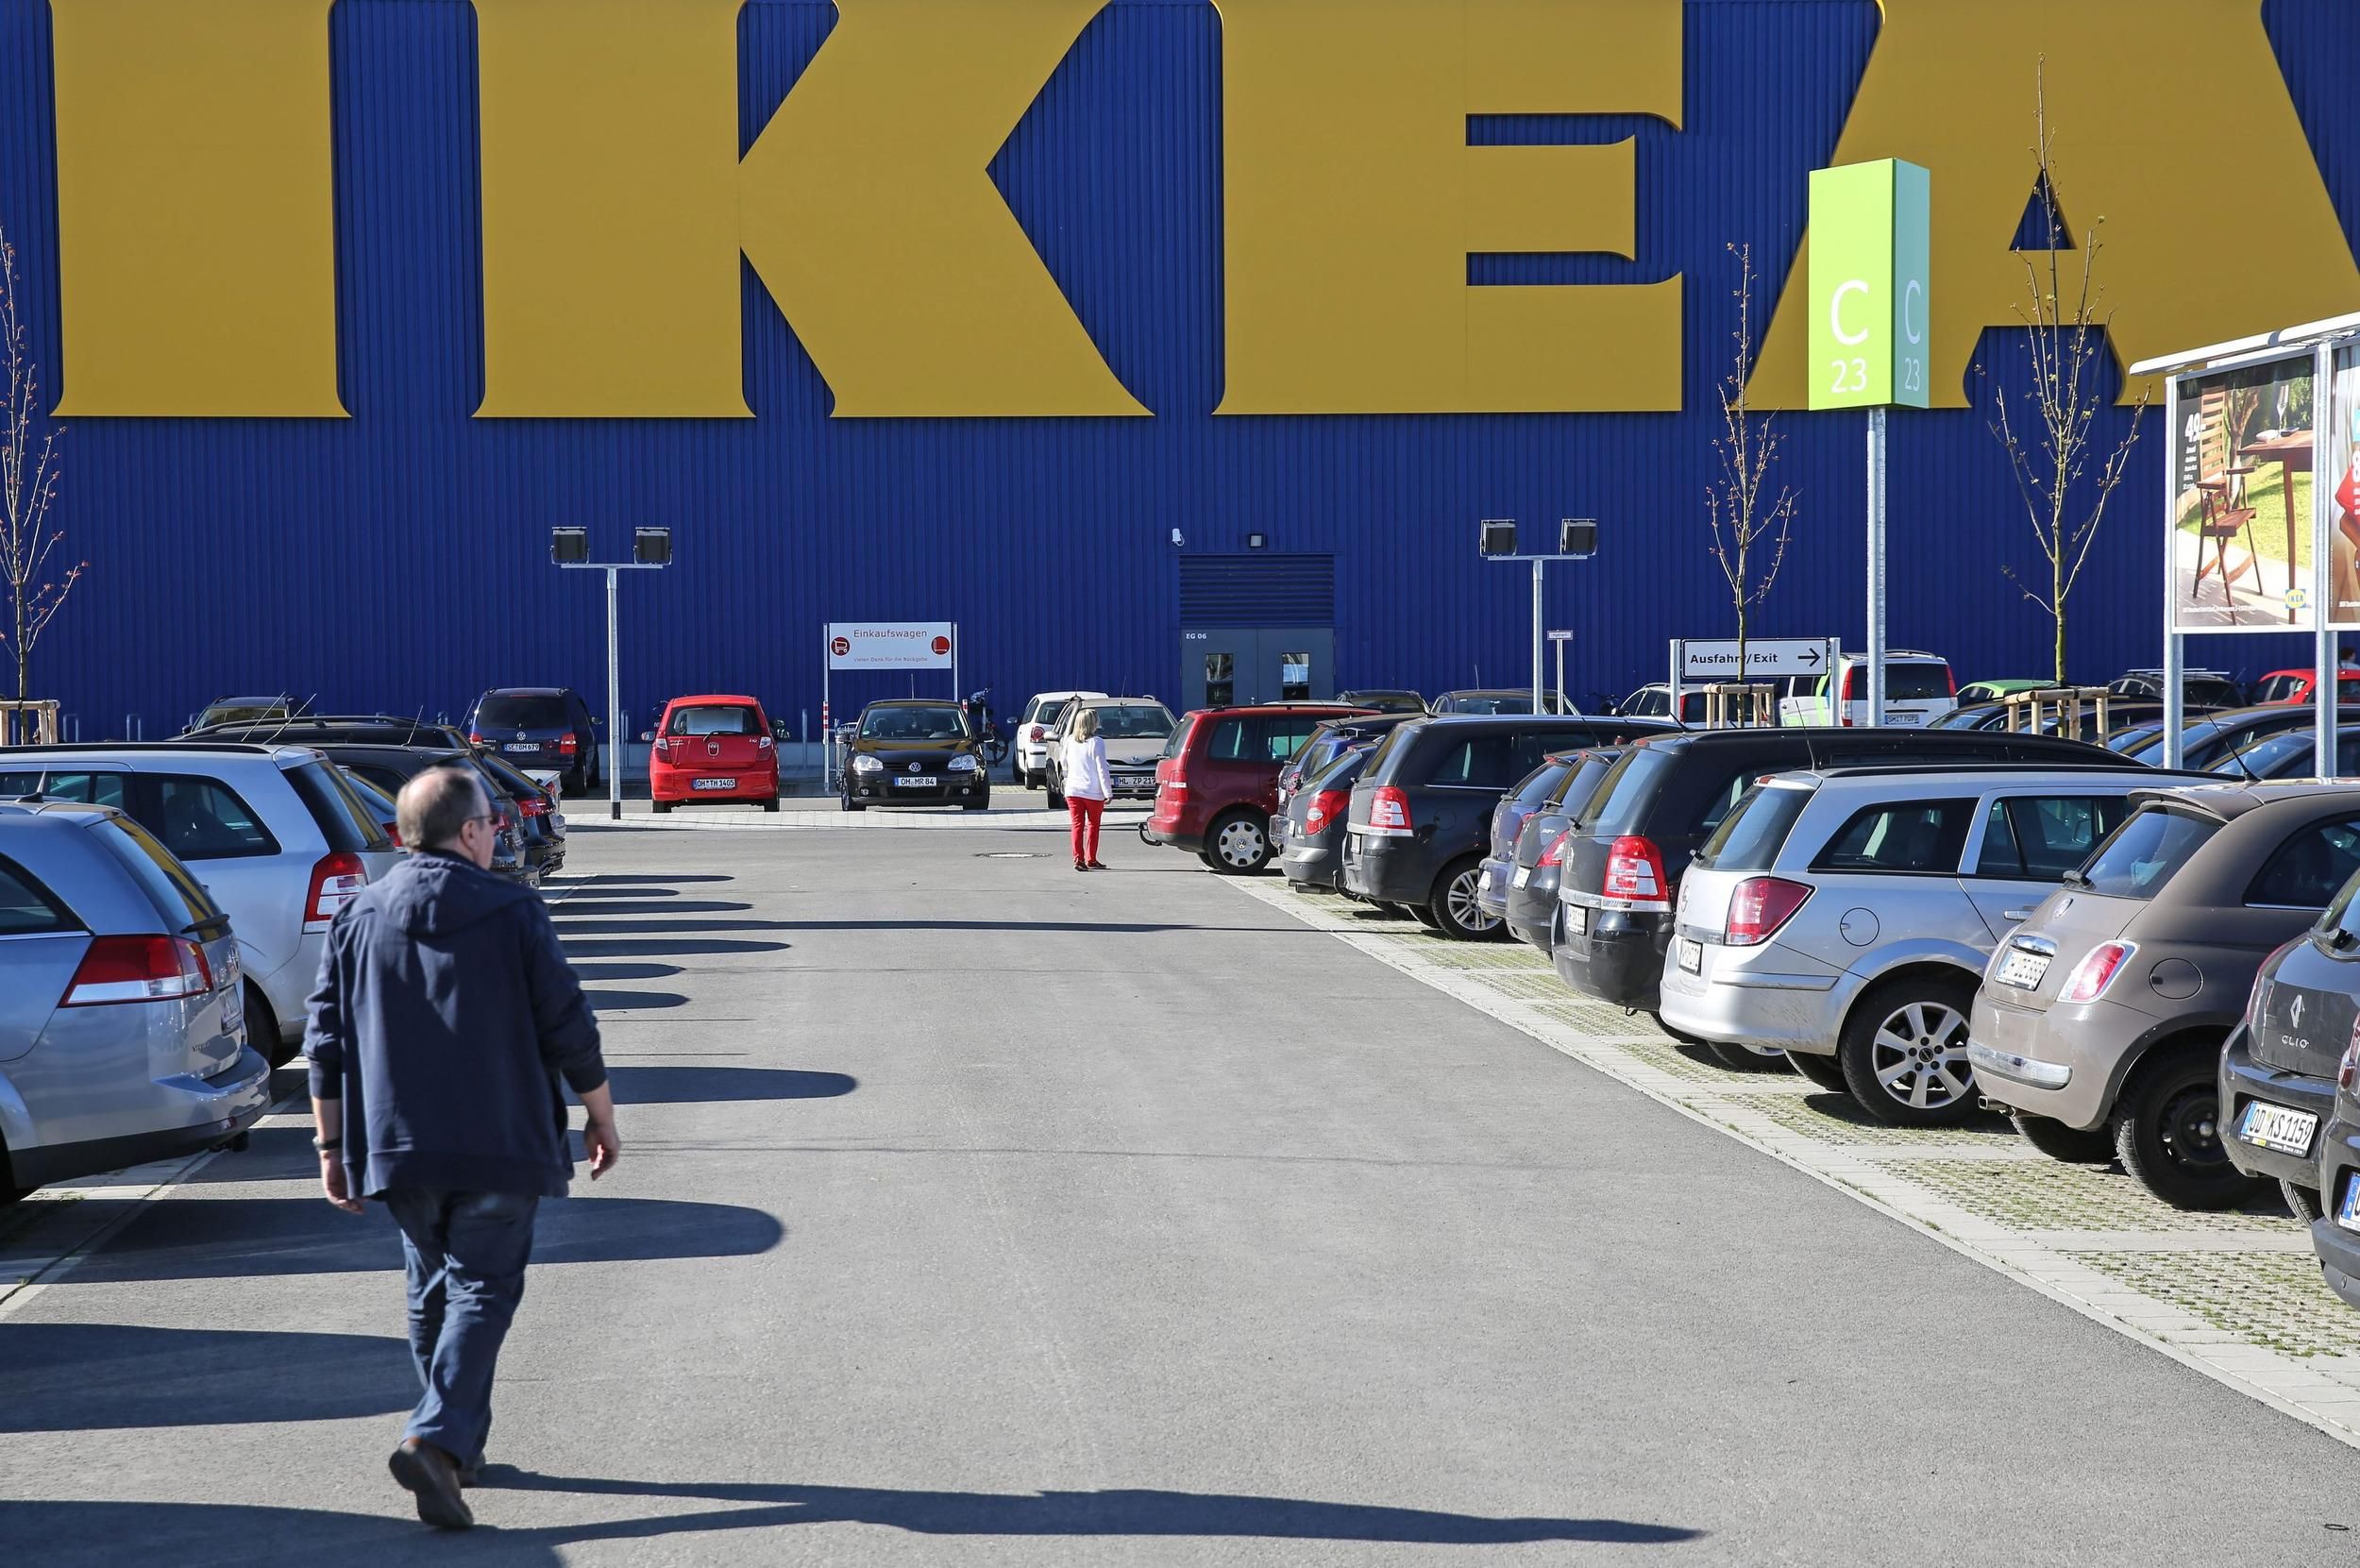 Ikea says it will raise the minimum hourly wage of its workers, putting pressure on other big name chains.